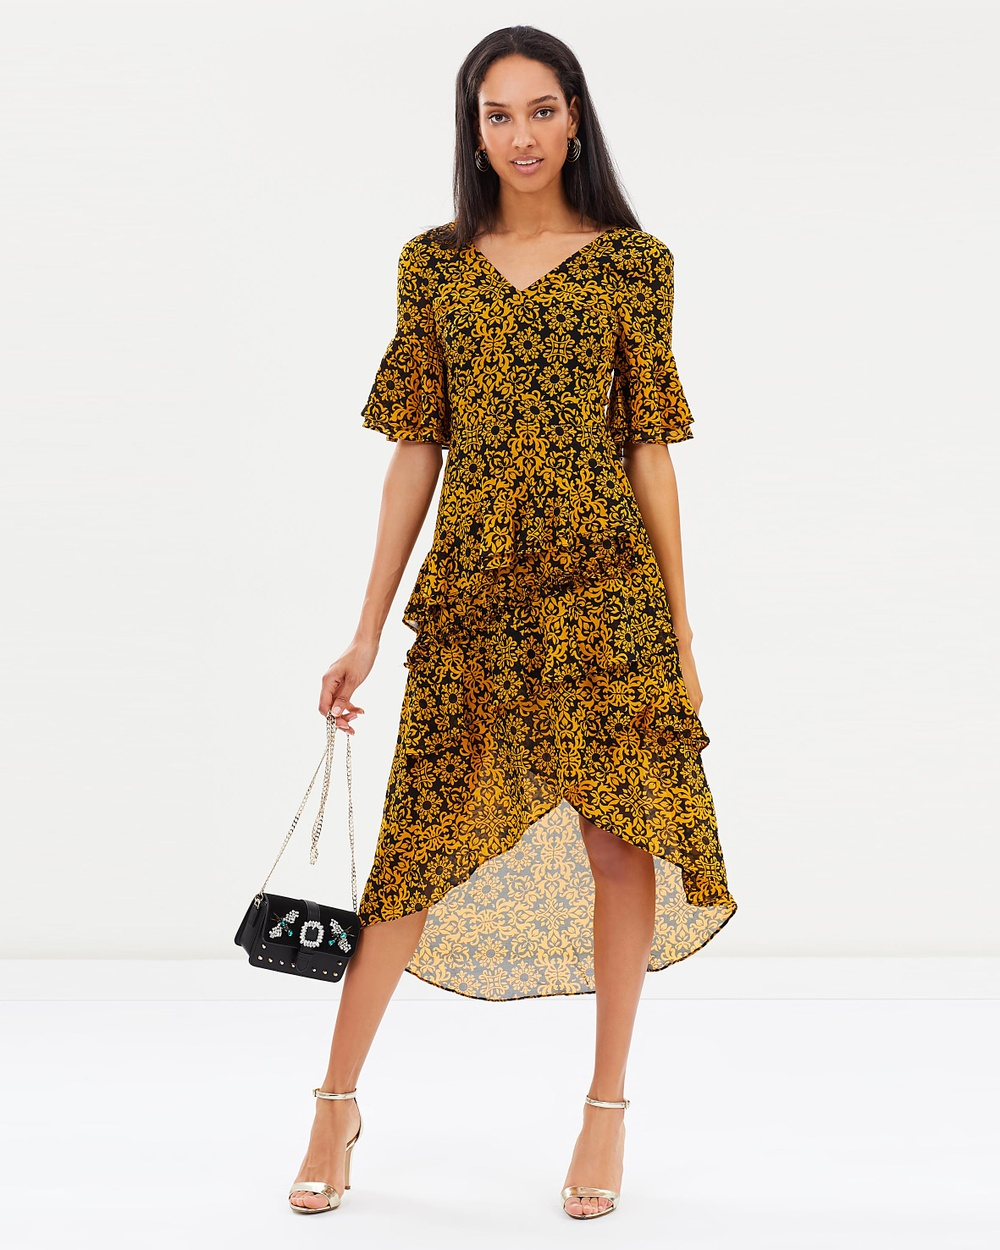 Atmos & Here ICONIC EXCLUSIVE Sana Ruffle Dress Dresses Mustard Wallpaper ICONIC EXCLUSIVE Sana Ruffle Dress